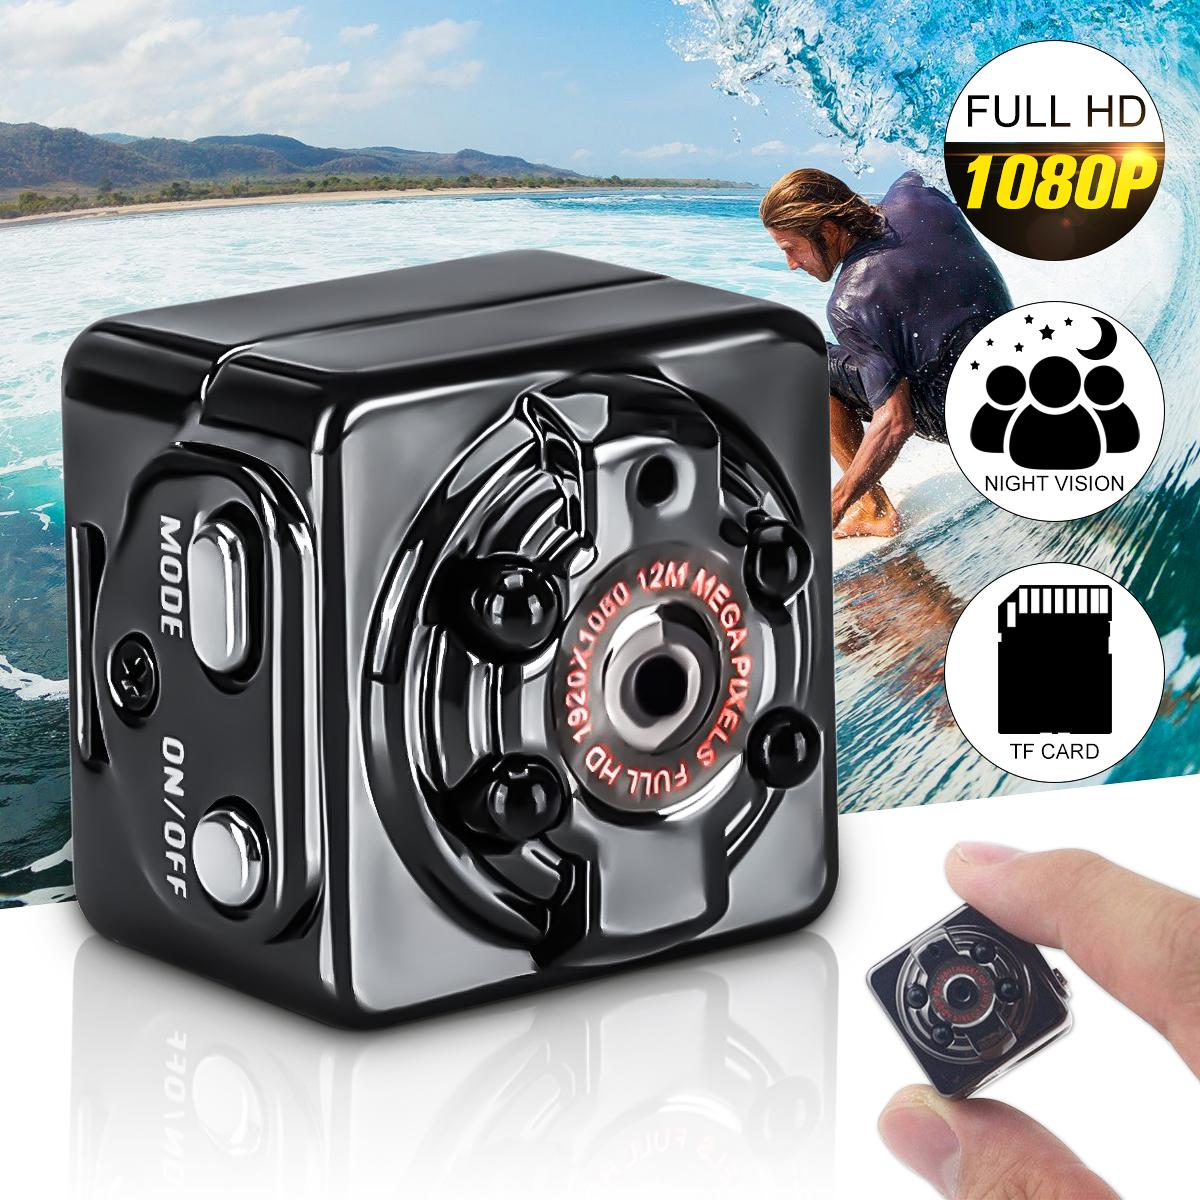 FHD 1080P/720P Mini Camcorder SQ8 Micro DV Sports Action Camera Car DVR Video Recorder Clip IR TF